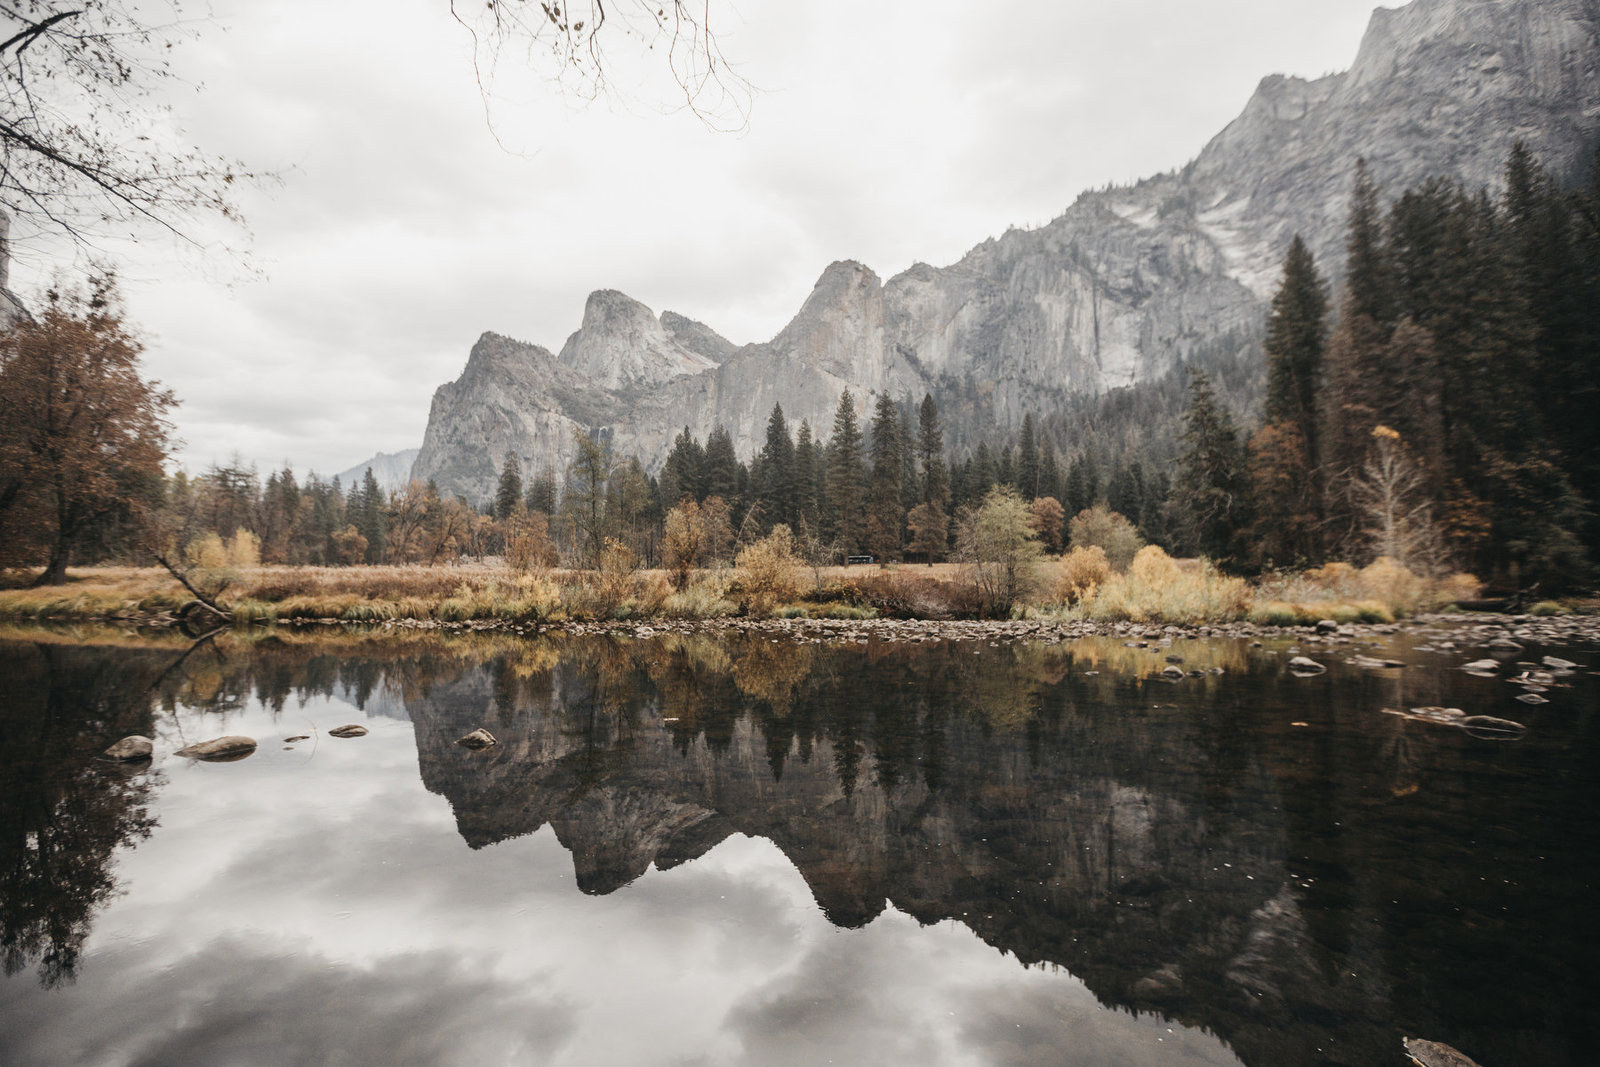 athena-and-camron-yosemite-elopement-wedding-photographer-elegent-valley-wedding34